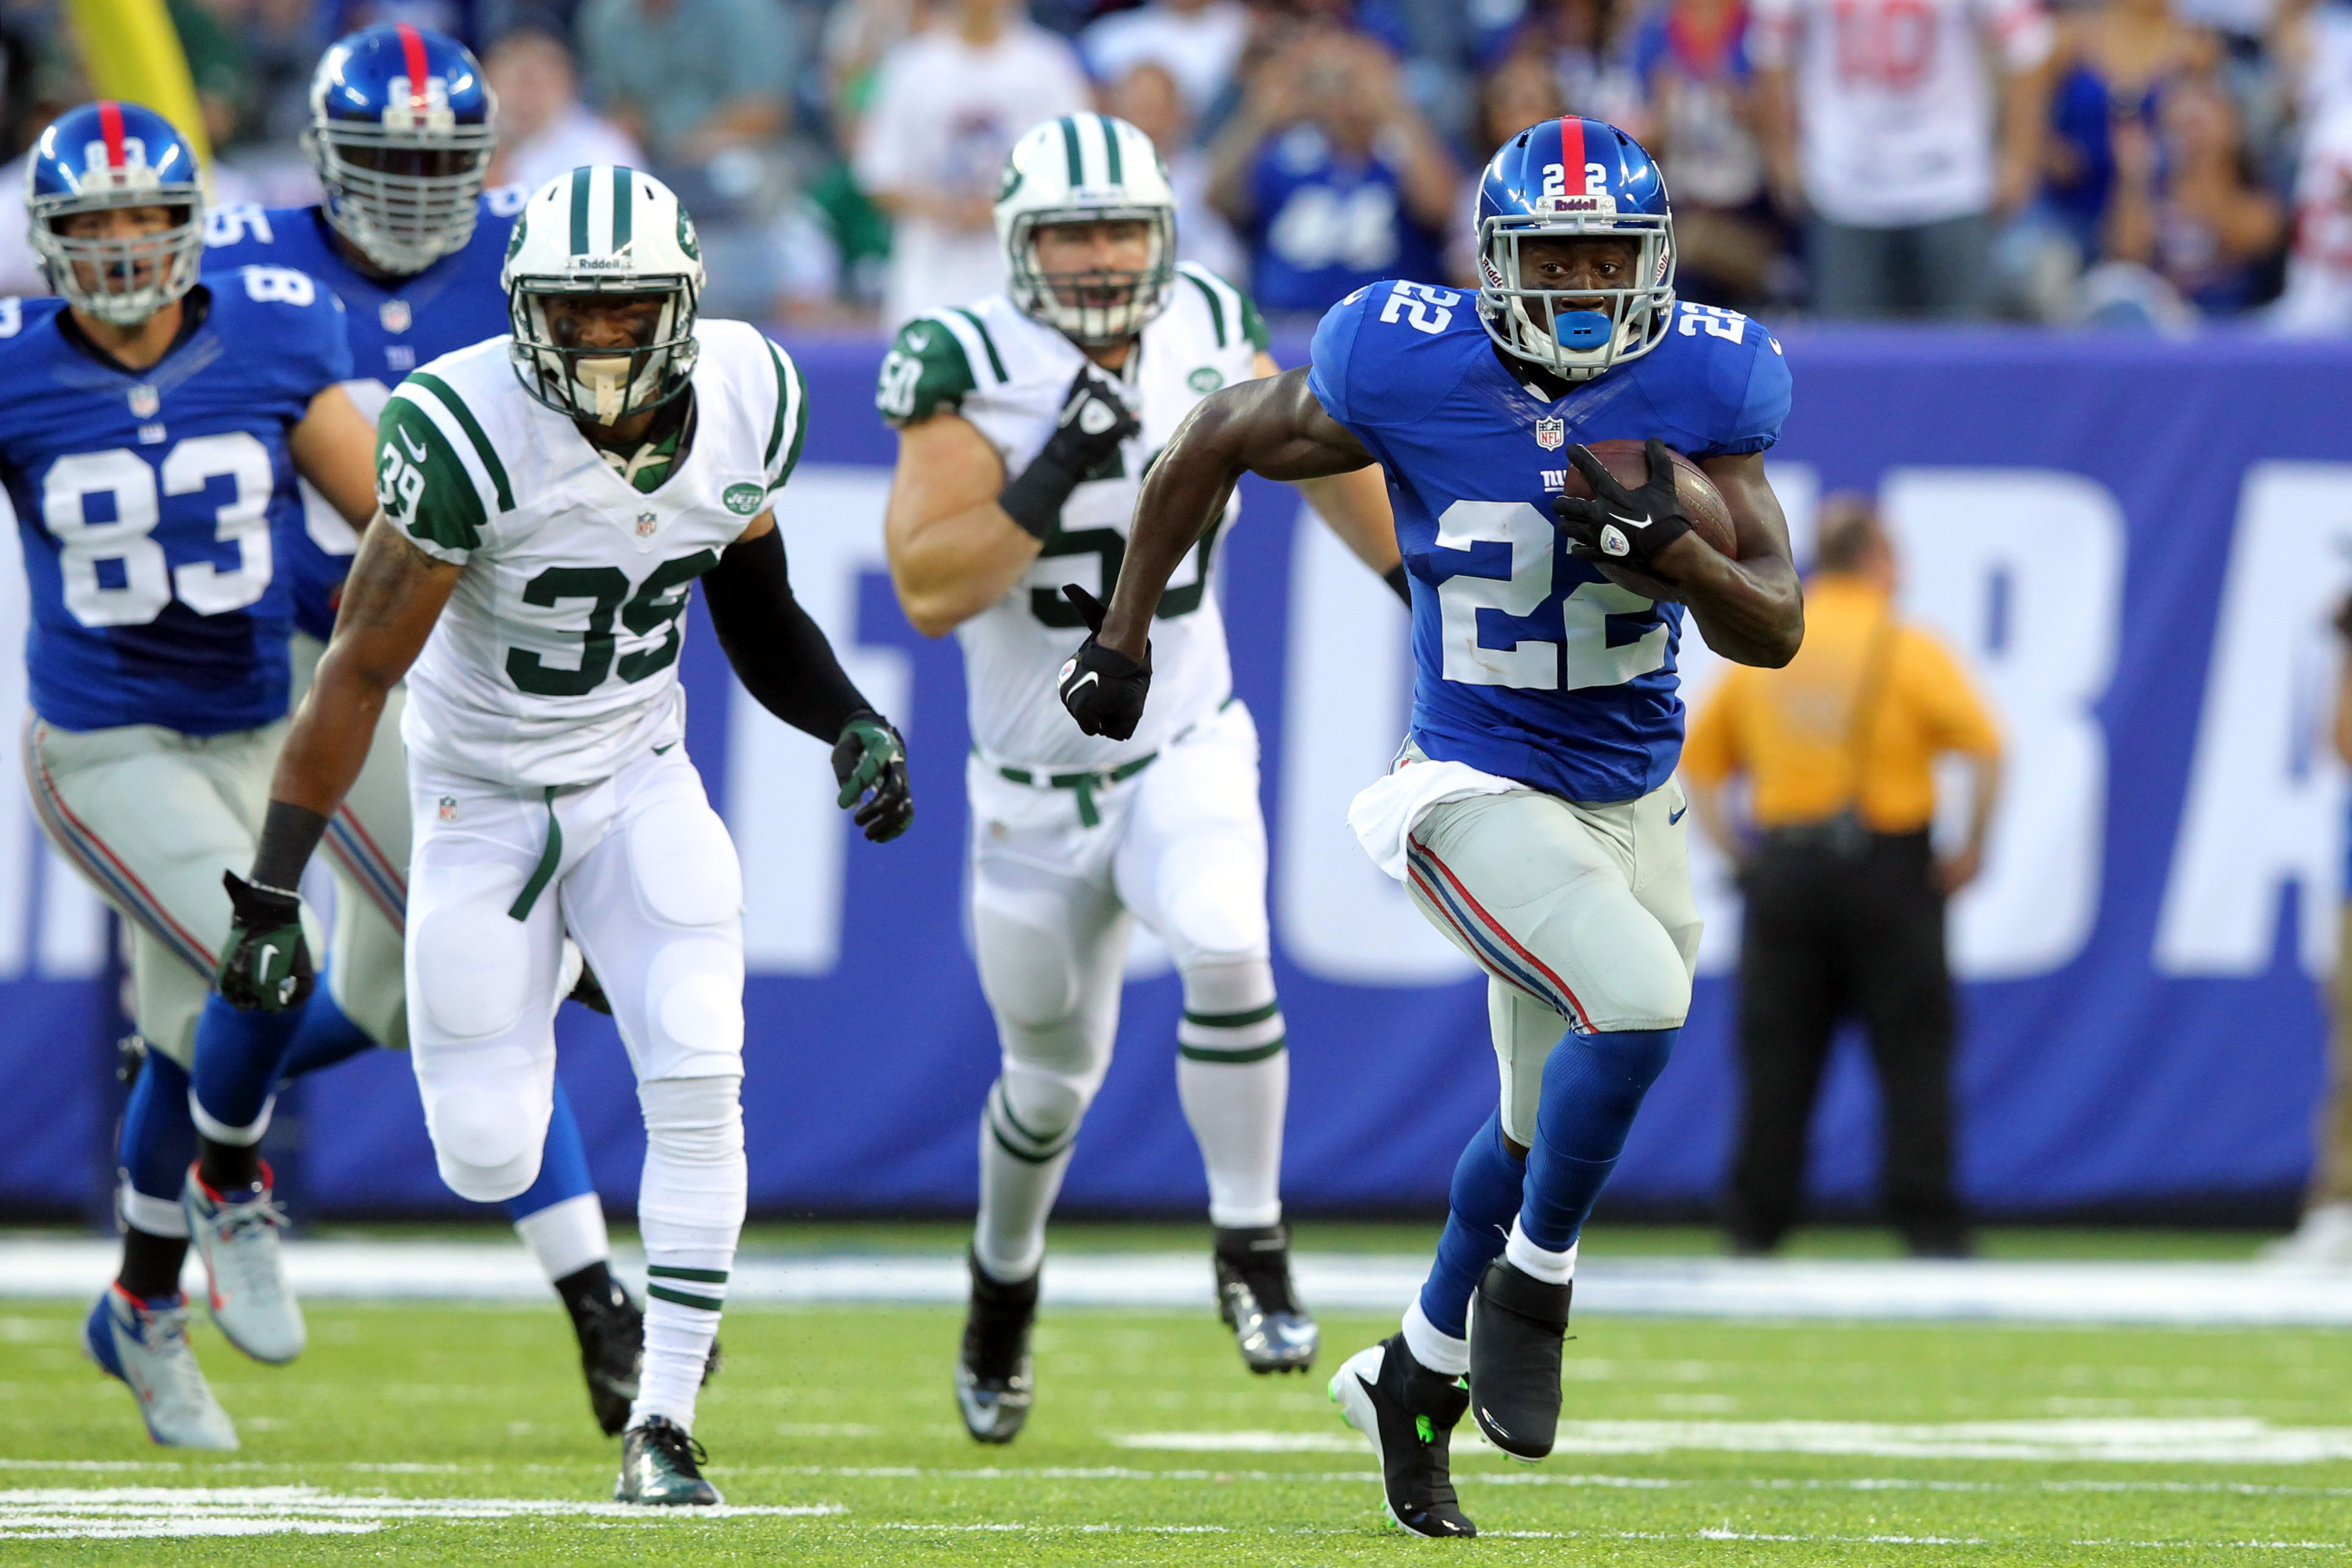 David Wilson goes 84 yards for a touchdown.